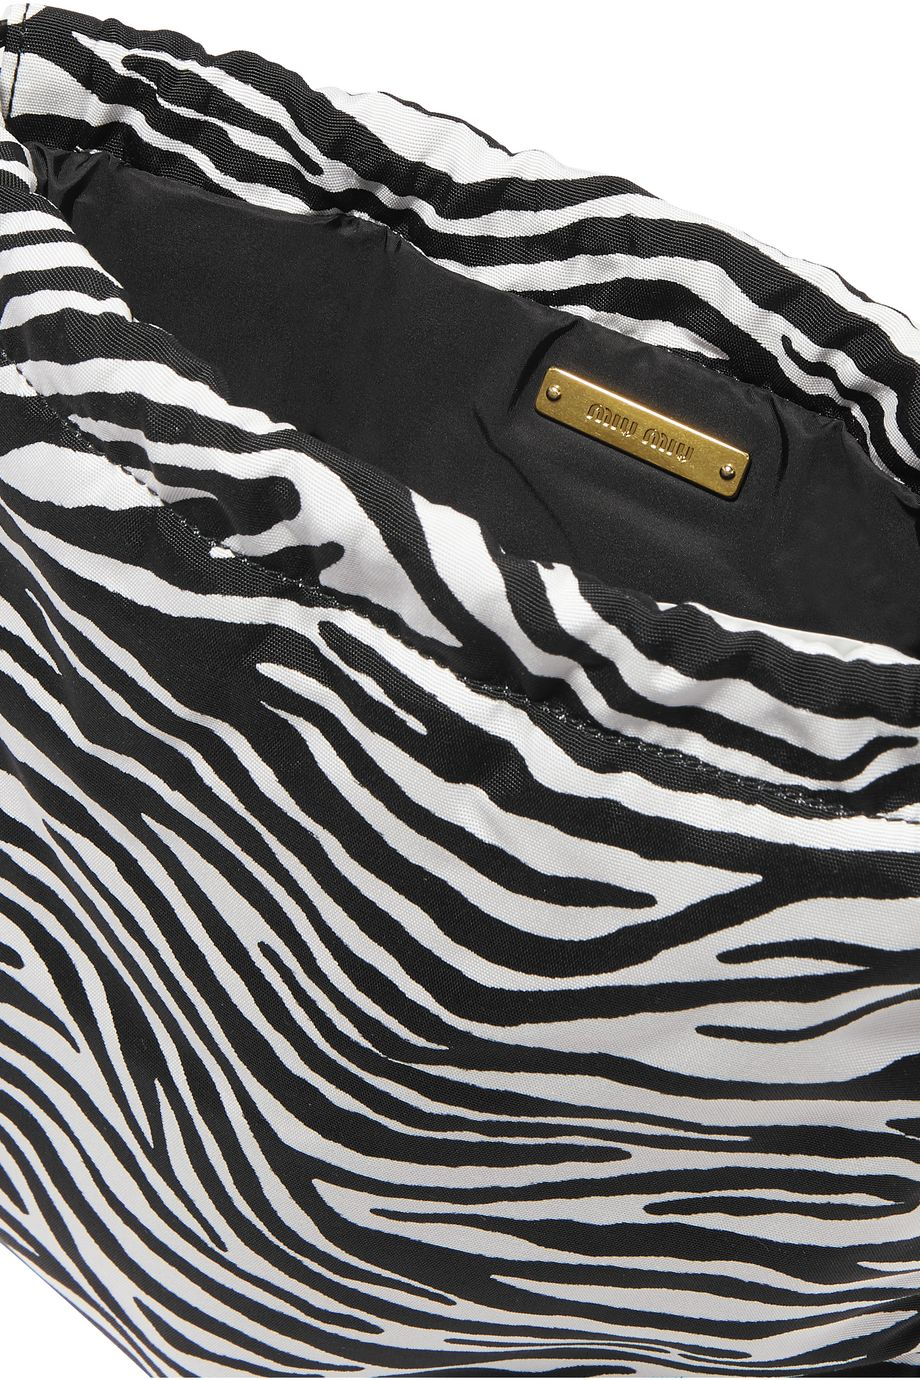 Miu Miu Leather-trimmed zebra-print canvas pouch